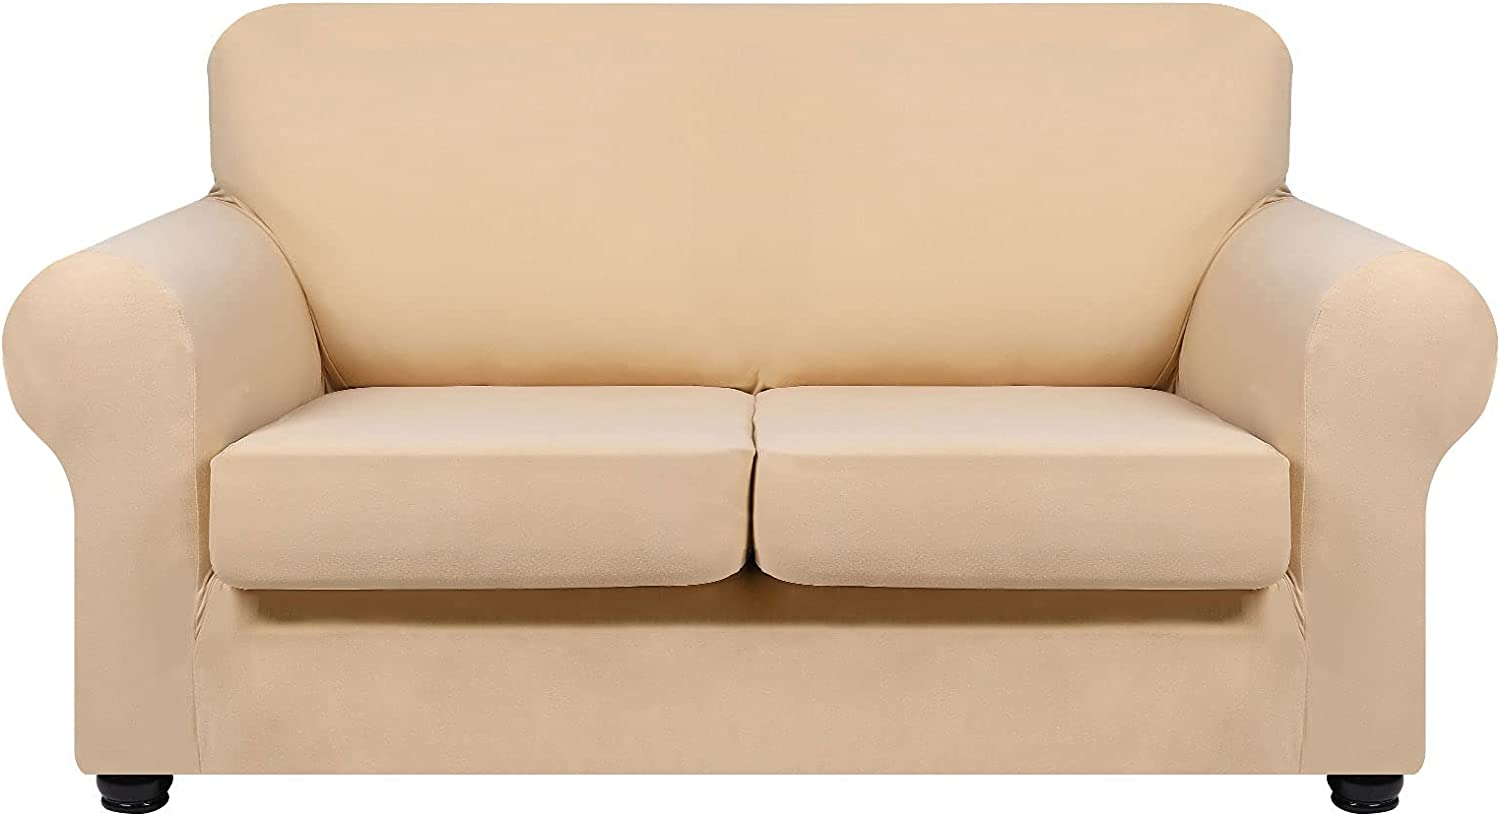 hyha 3 Pieces Stretch Loveseat Slipcovers - Soft Couch Covers for 2 Cushion Couch, Washable Furniture Covers, Sofa Cover for Living Room with Elastic Bottom for Pets (Loveseat, Beige)